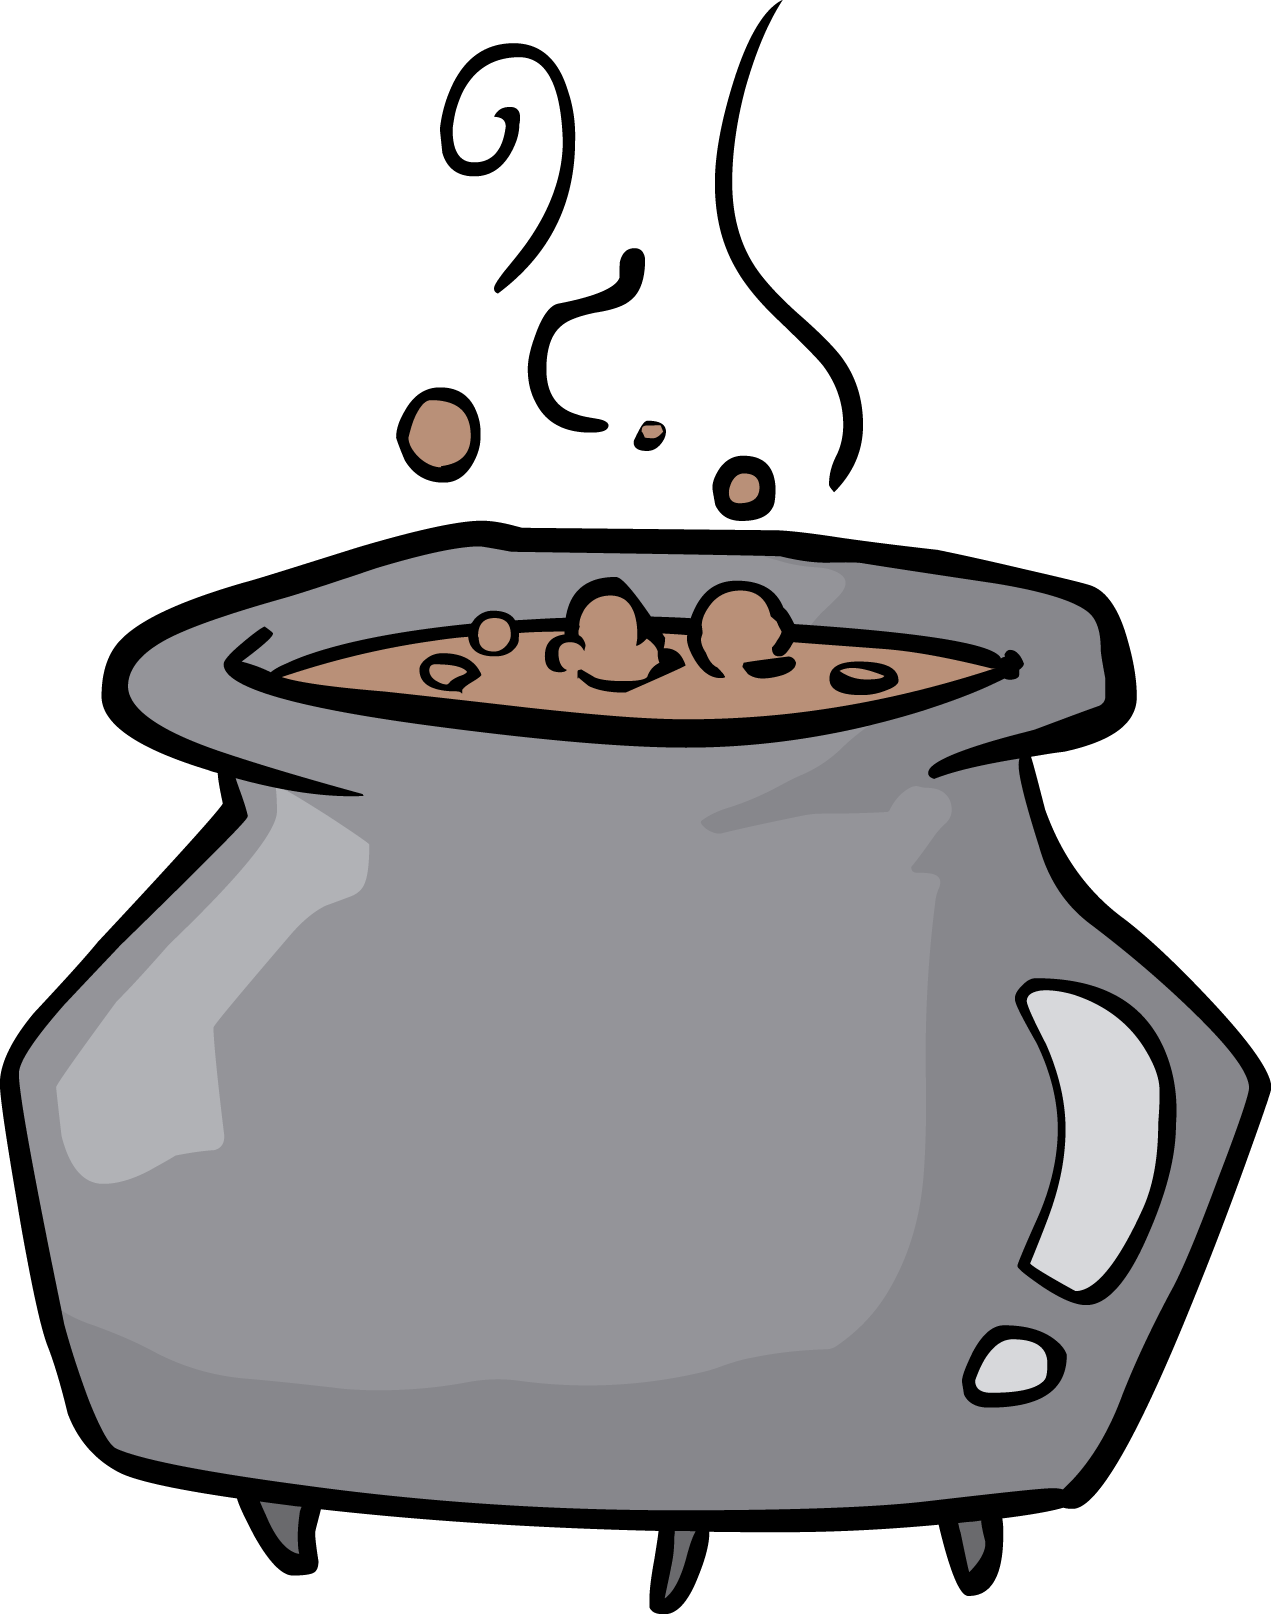 Evaporation clipart hot water. Free pictures of boiling